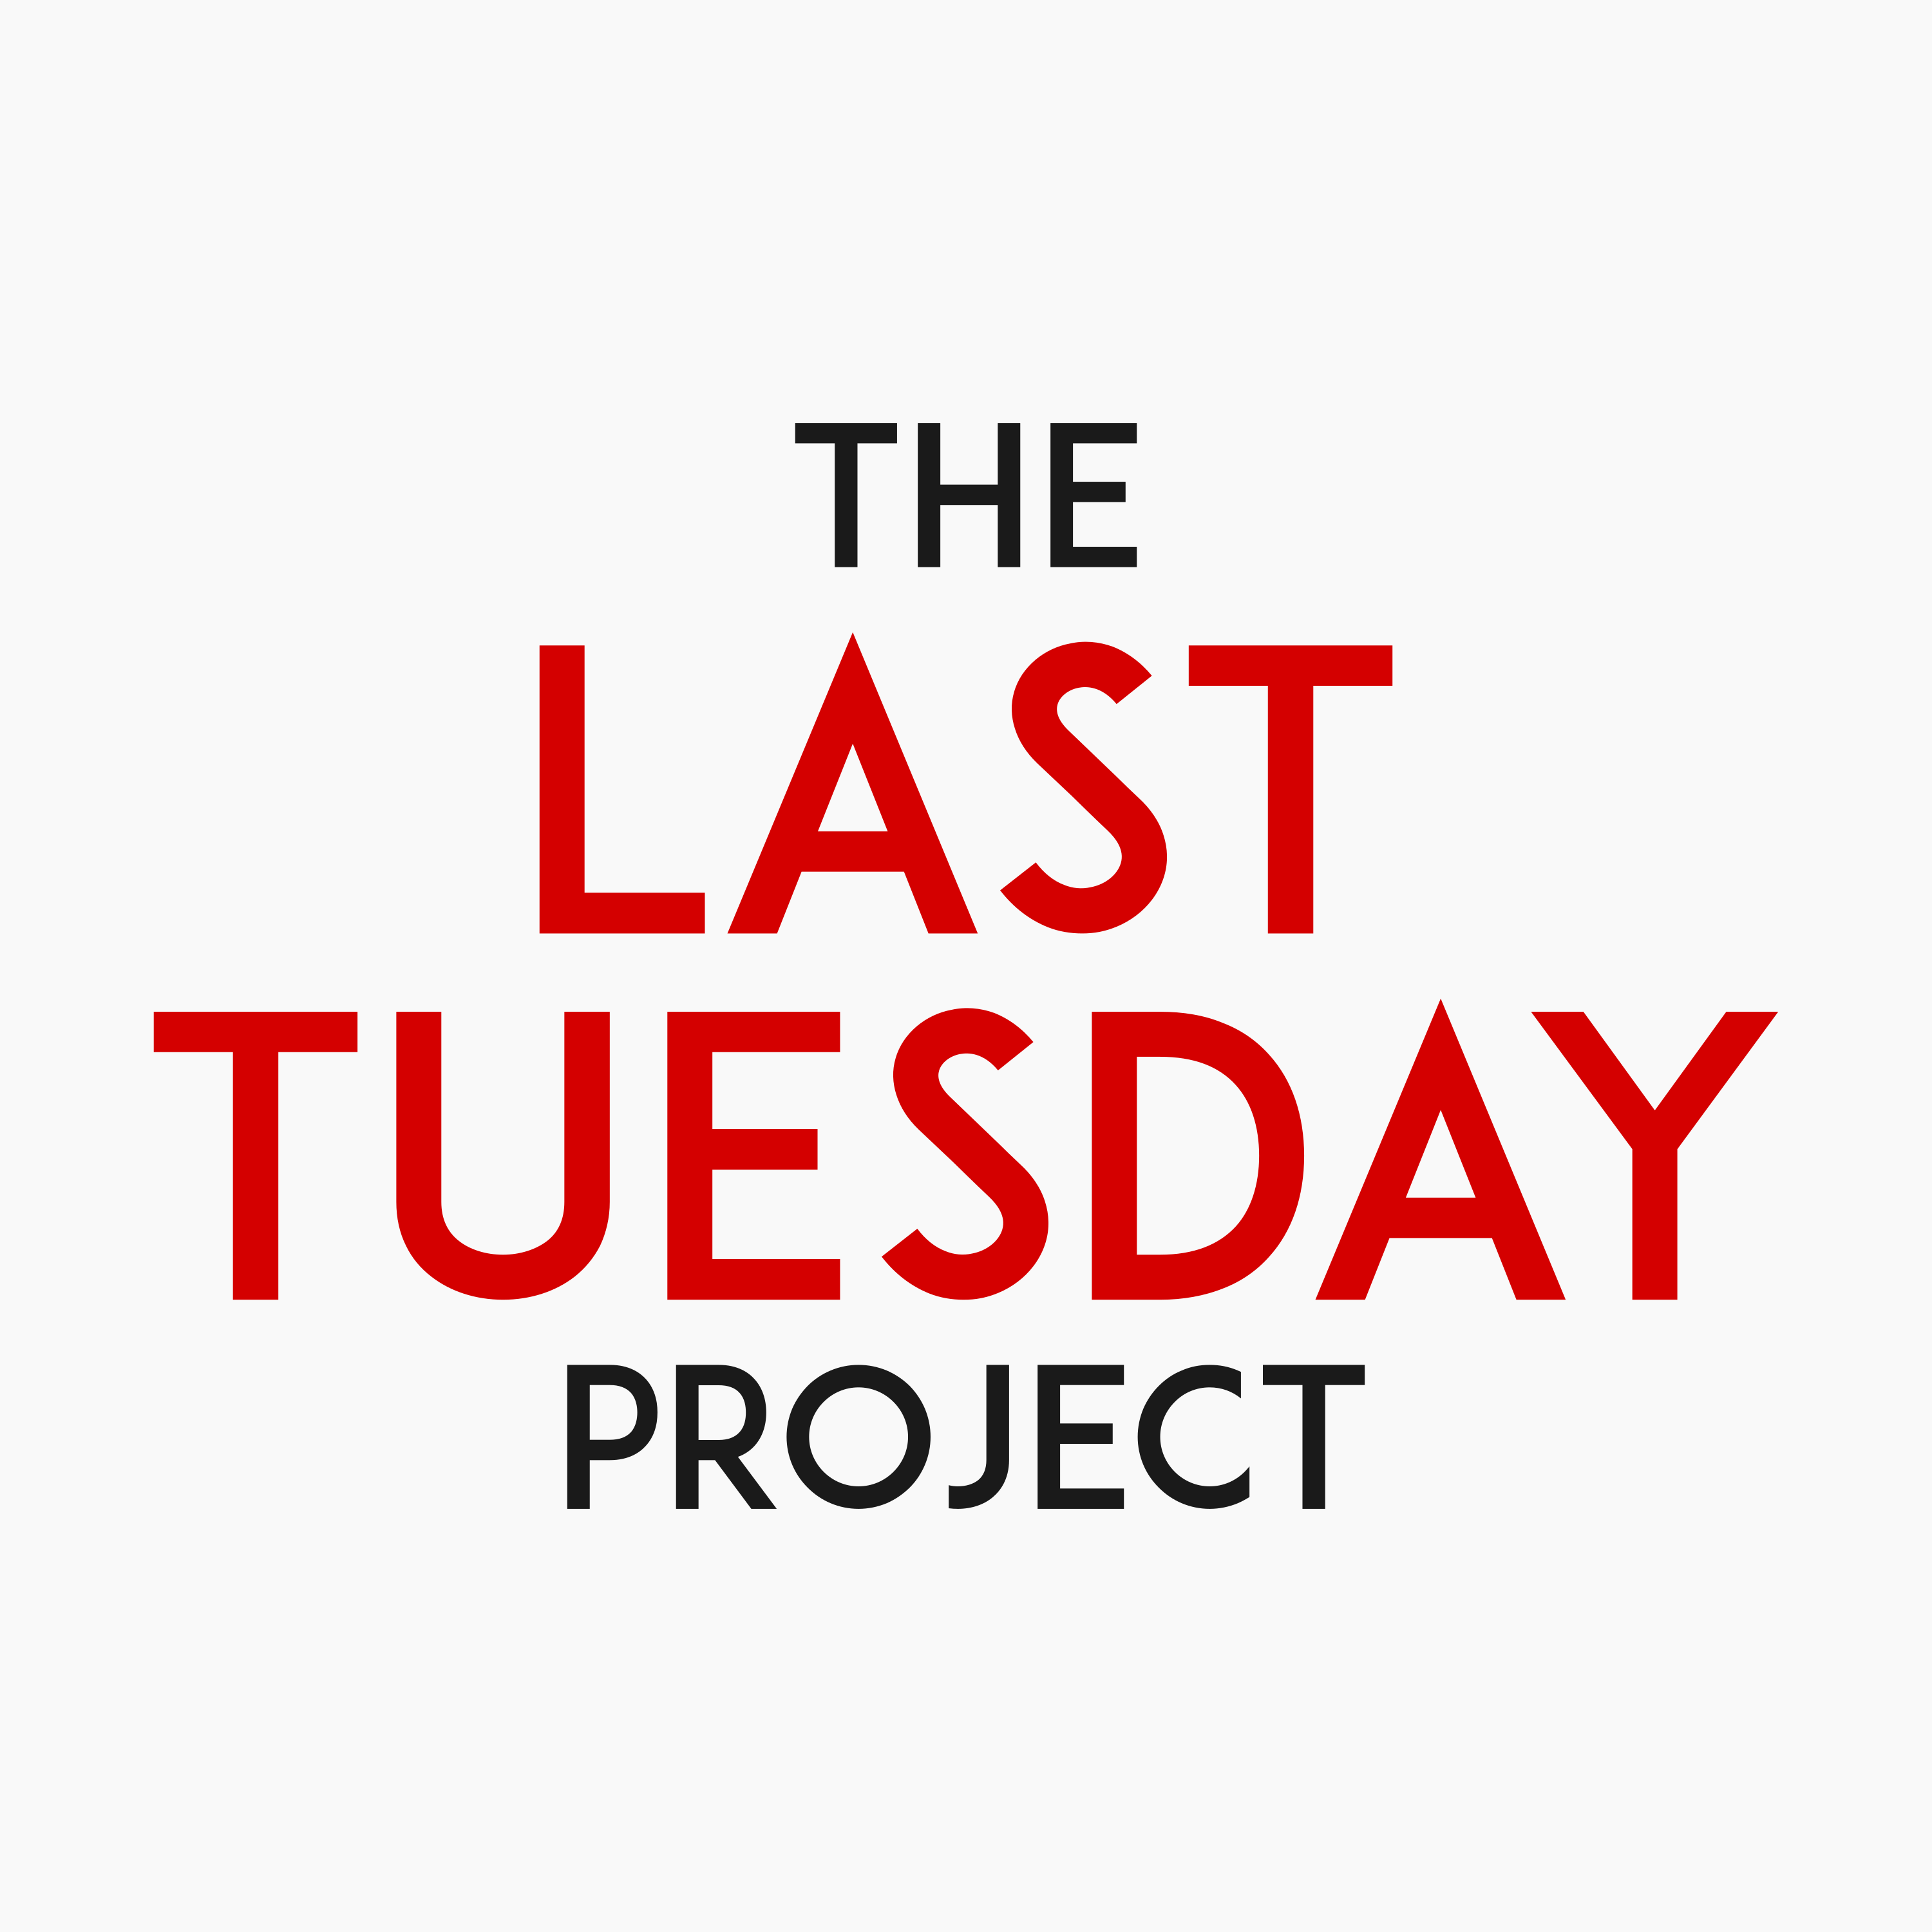 The Last Tuesday Project logo